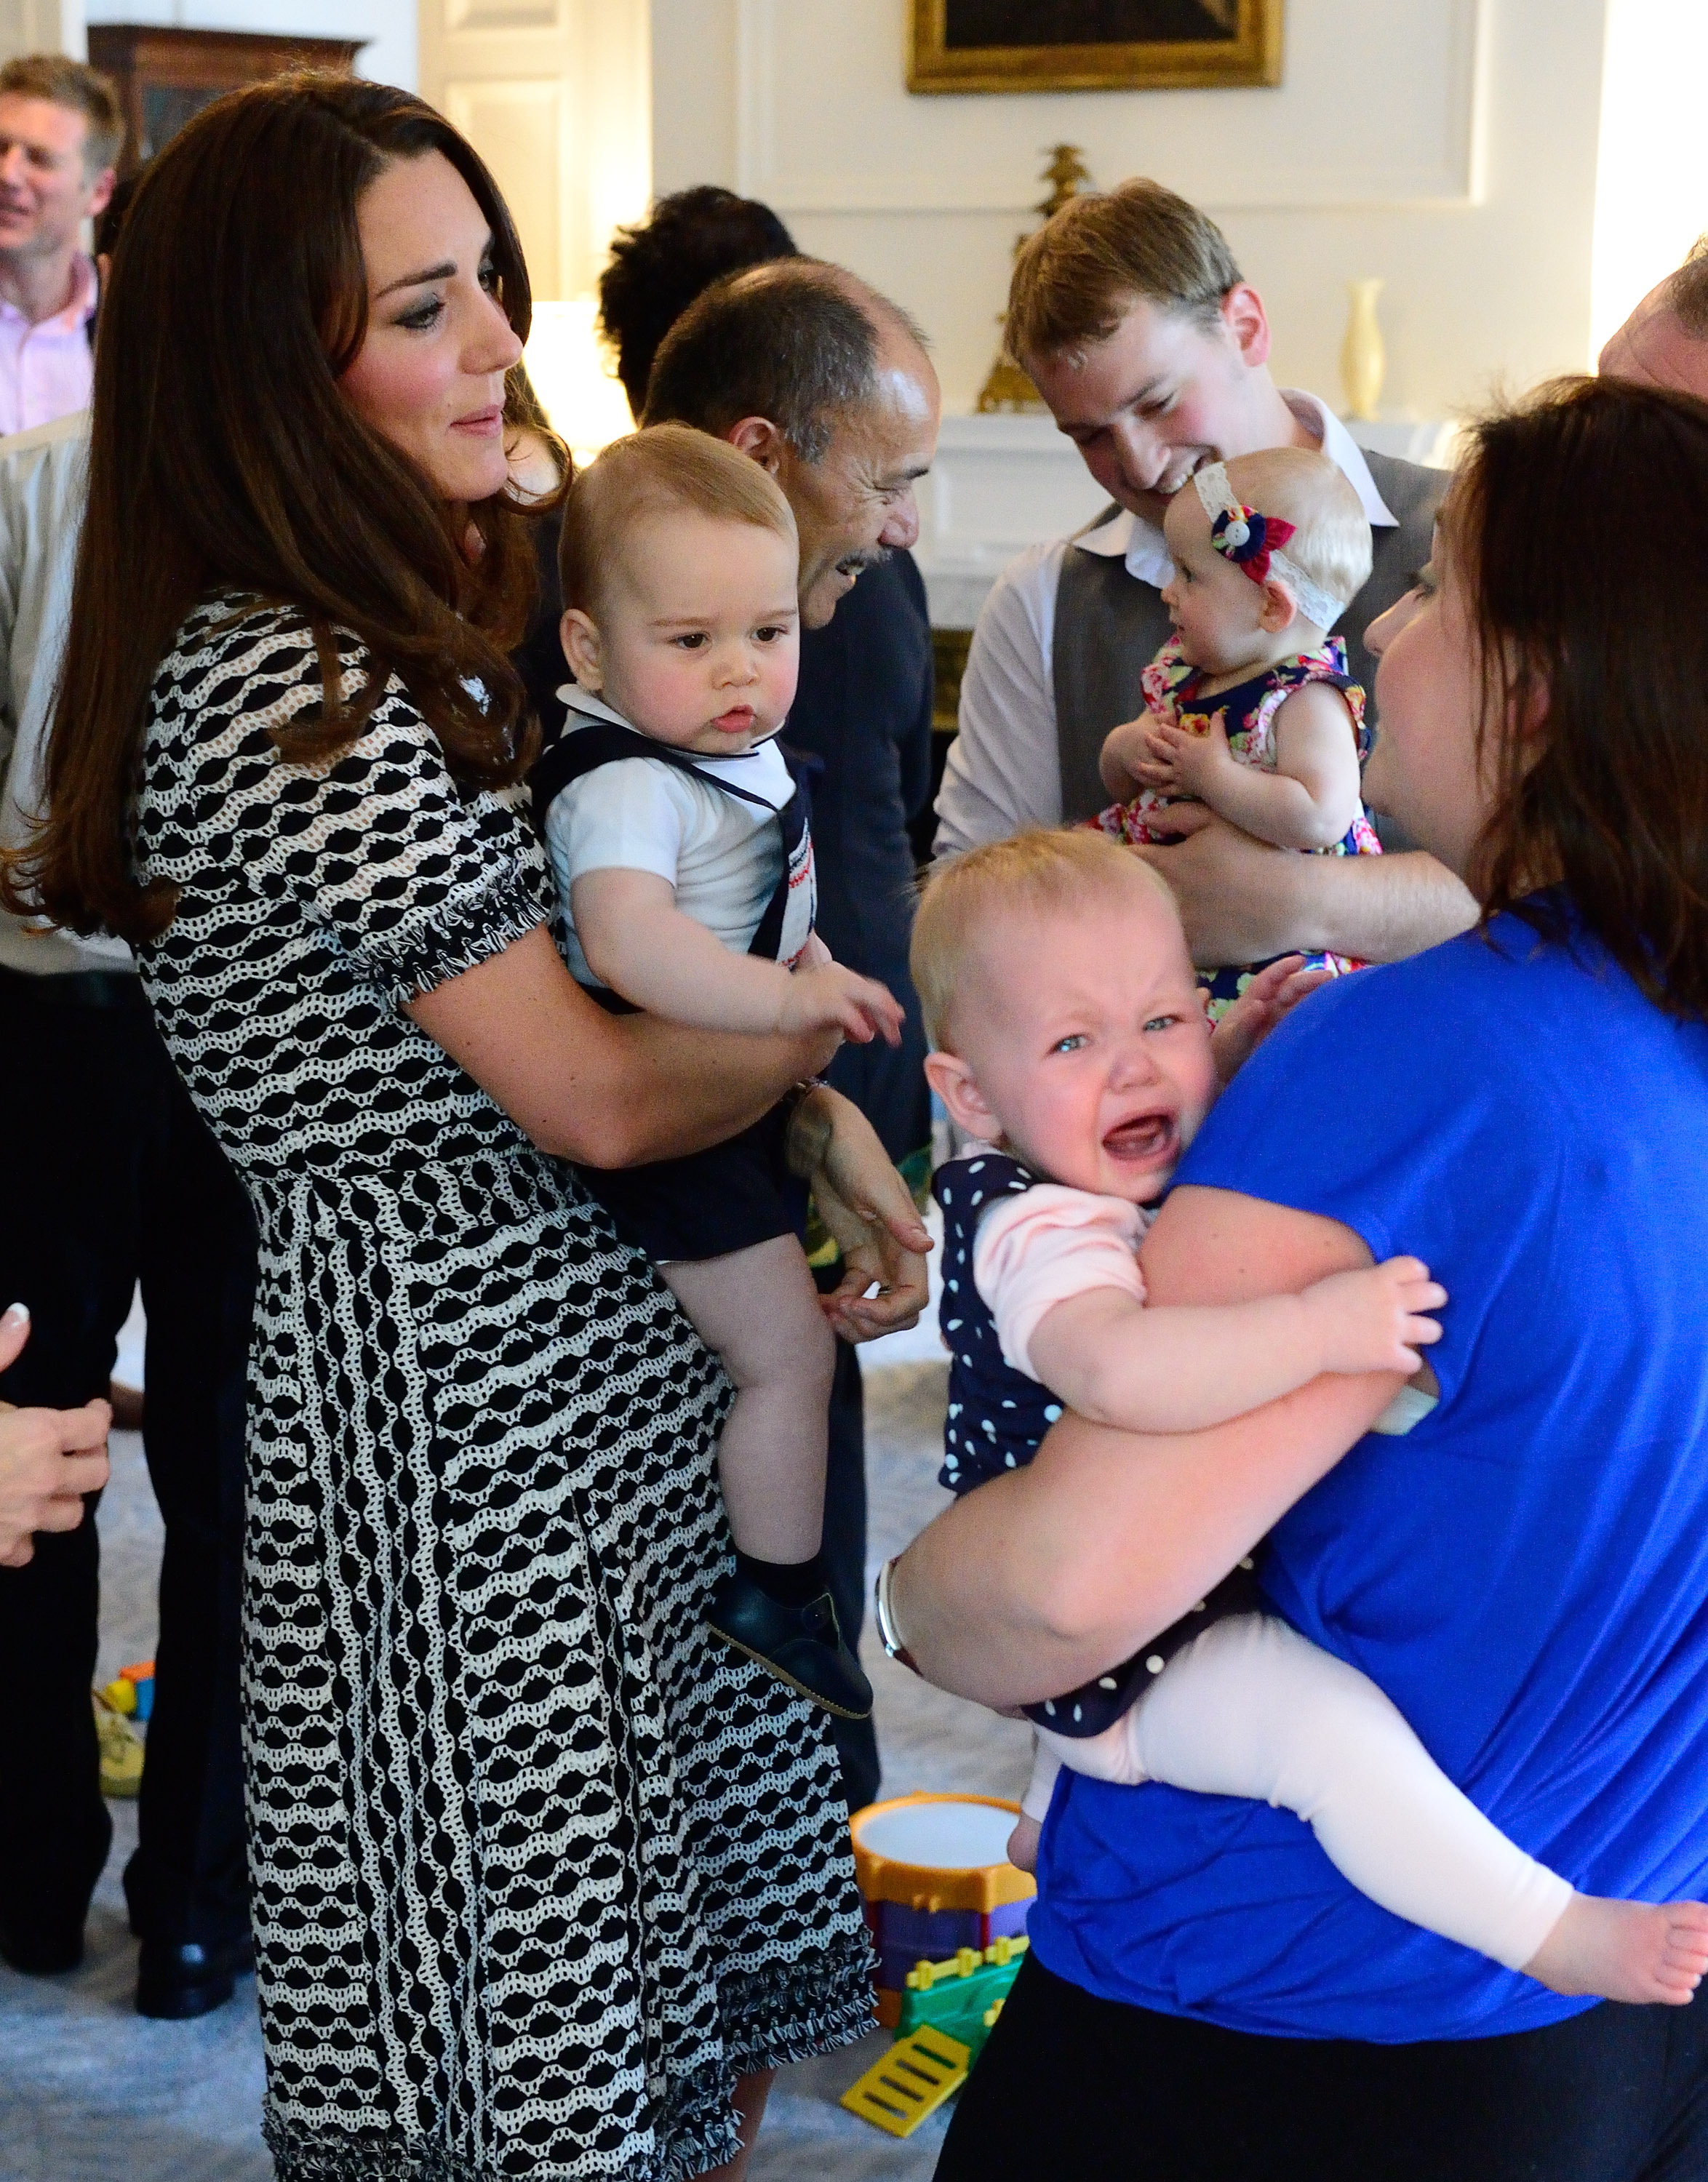 The Duke and Duchess of Cambridge and Prince George attend an event at Government House in Wellington, New Zealand, on the 9th April 2014.